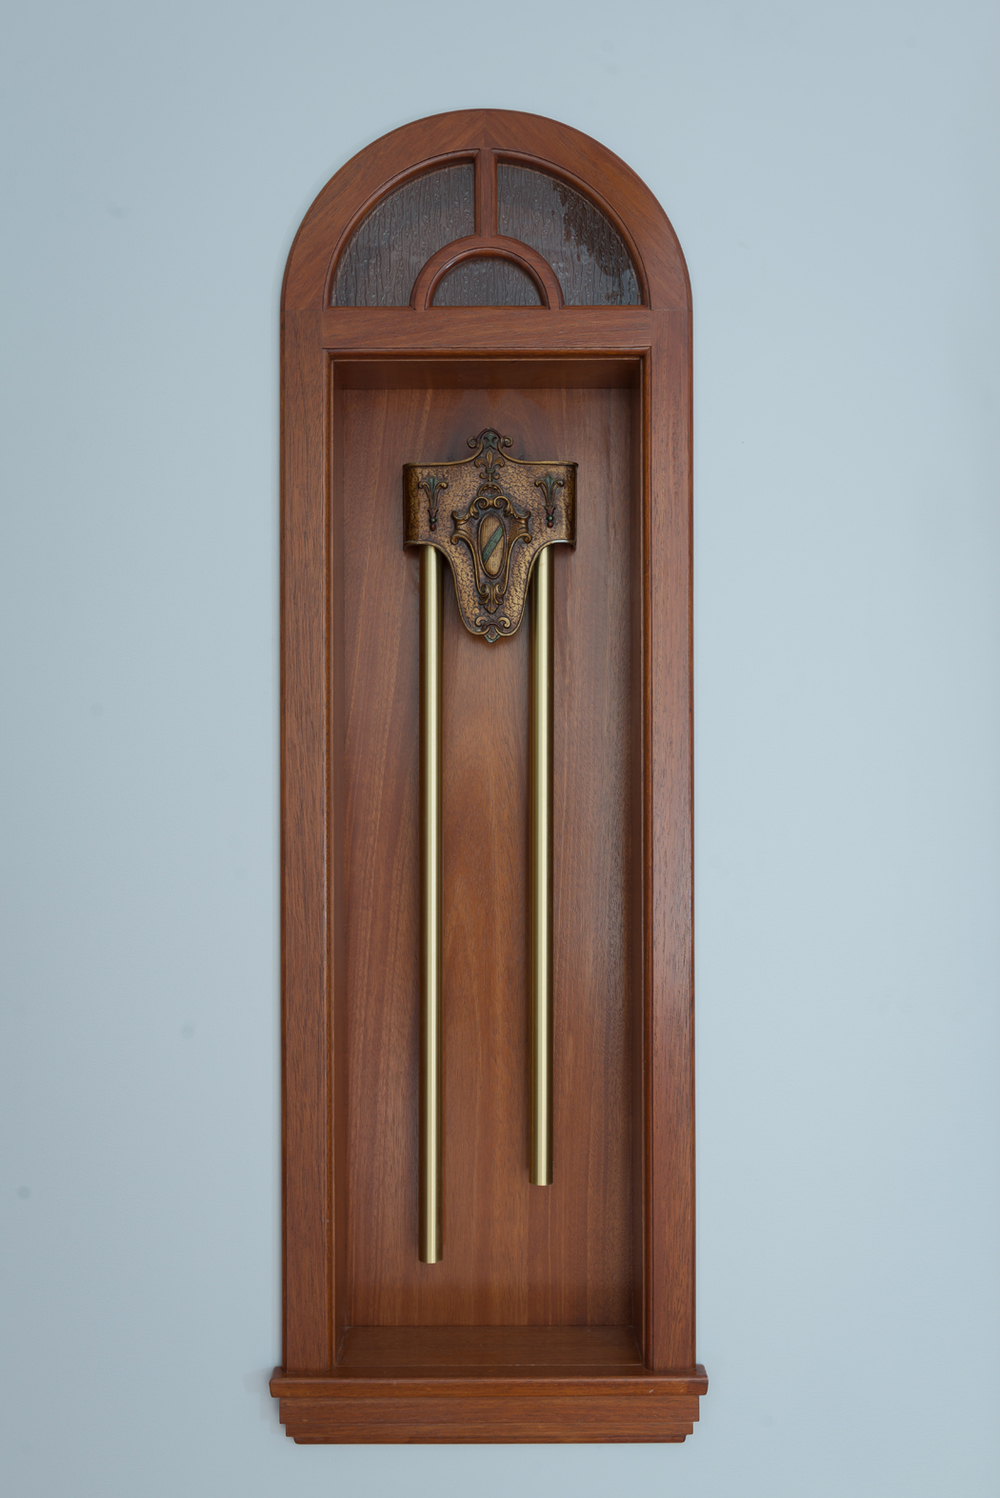 This beautiful doorbell housing was proudly designed and built in our Ventura woodshop!